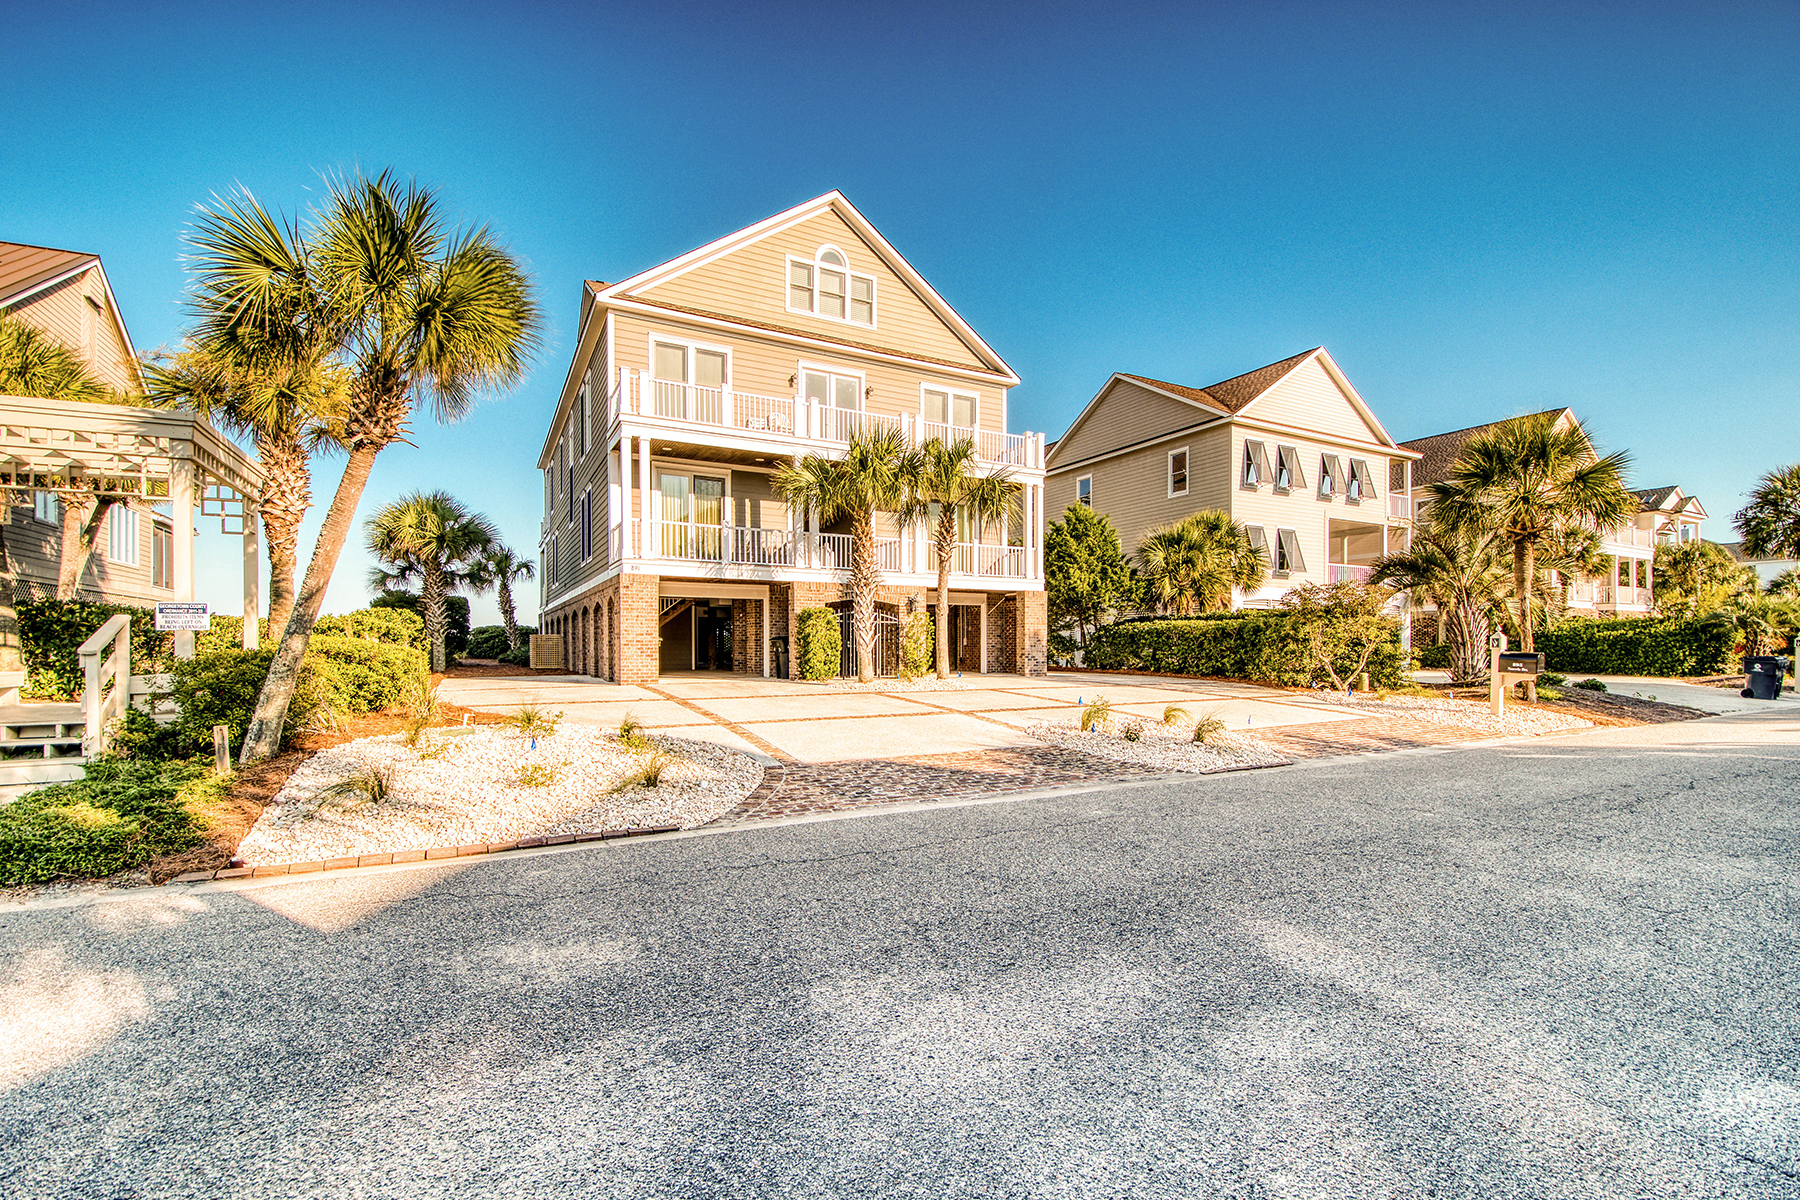 Single Family Homes for Sale at 891 Norris Drive Pawleys Island, South Carolina 29585 United States